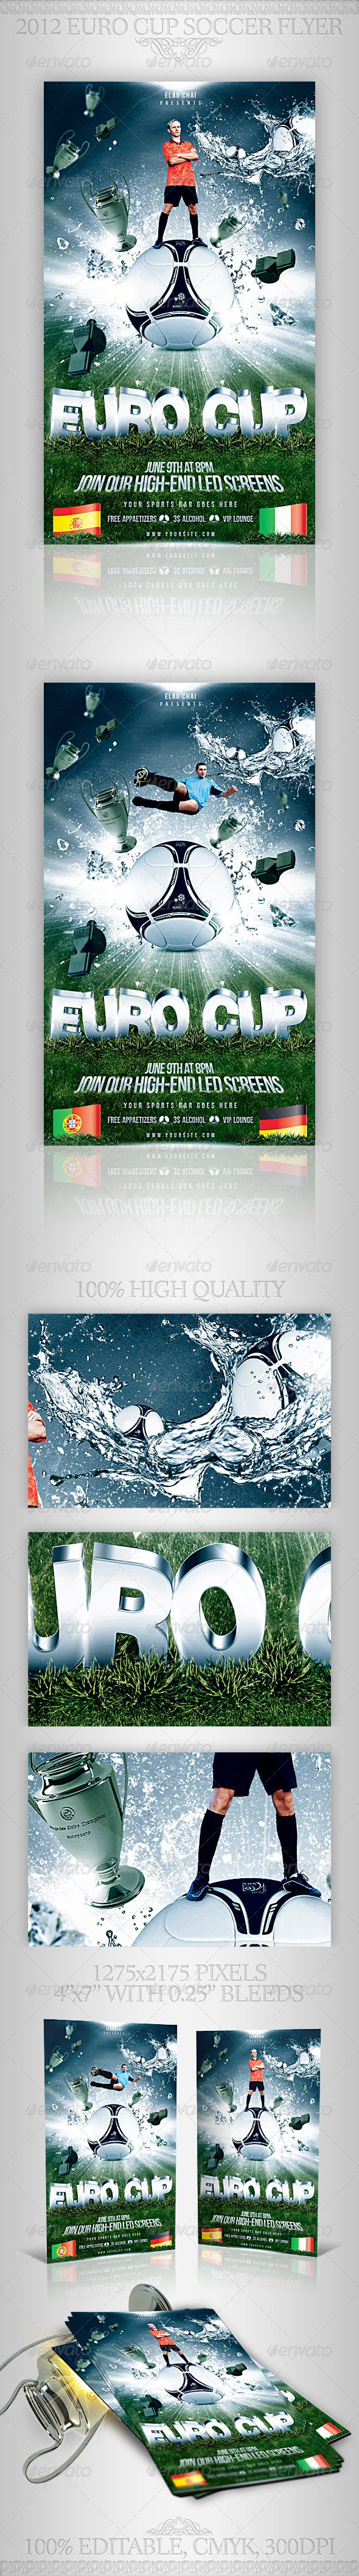 Soccer Football Cup Flyer Template - Sports Events